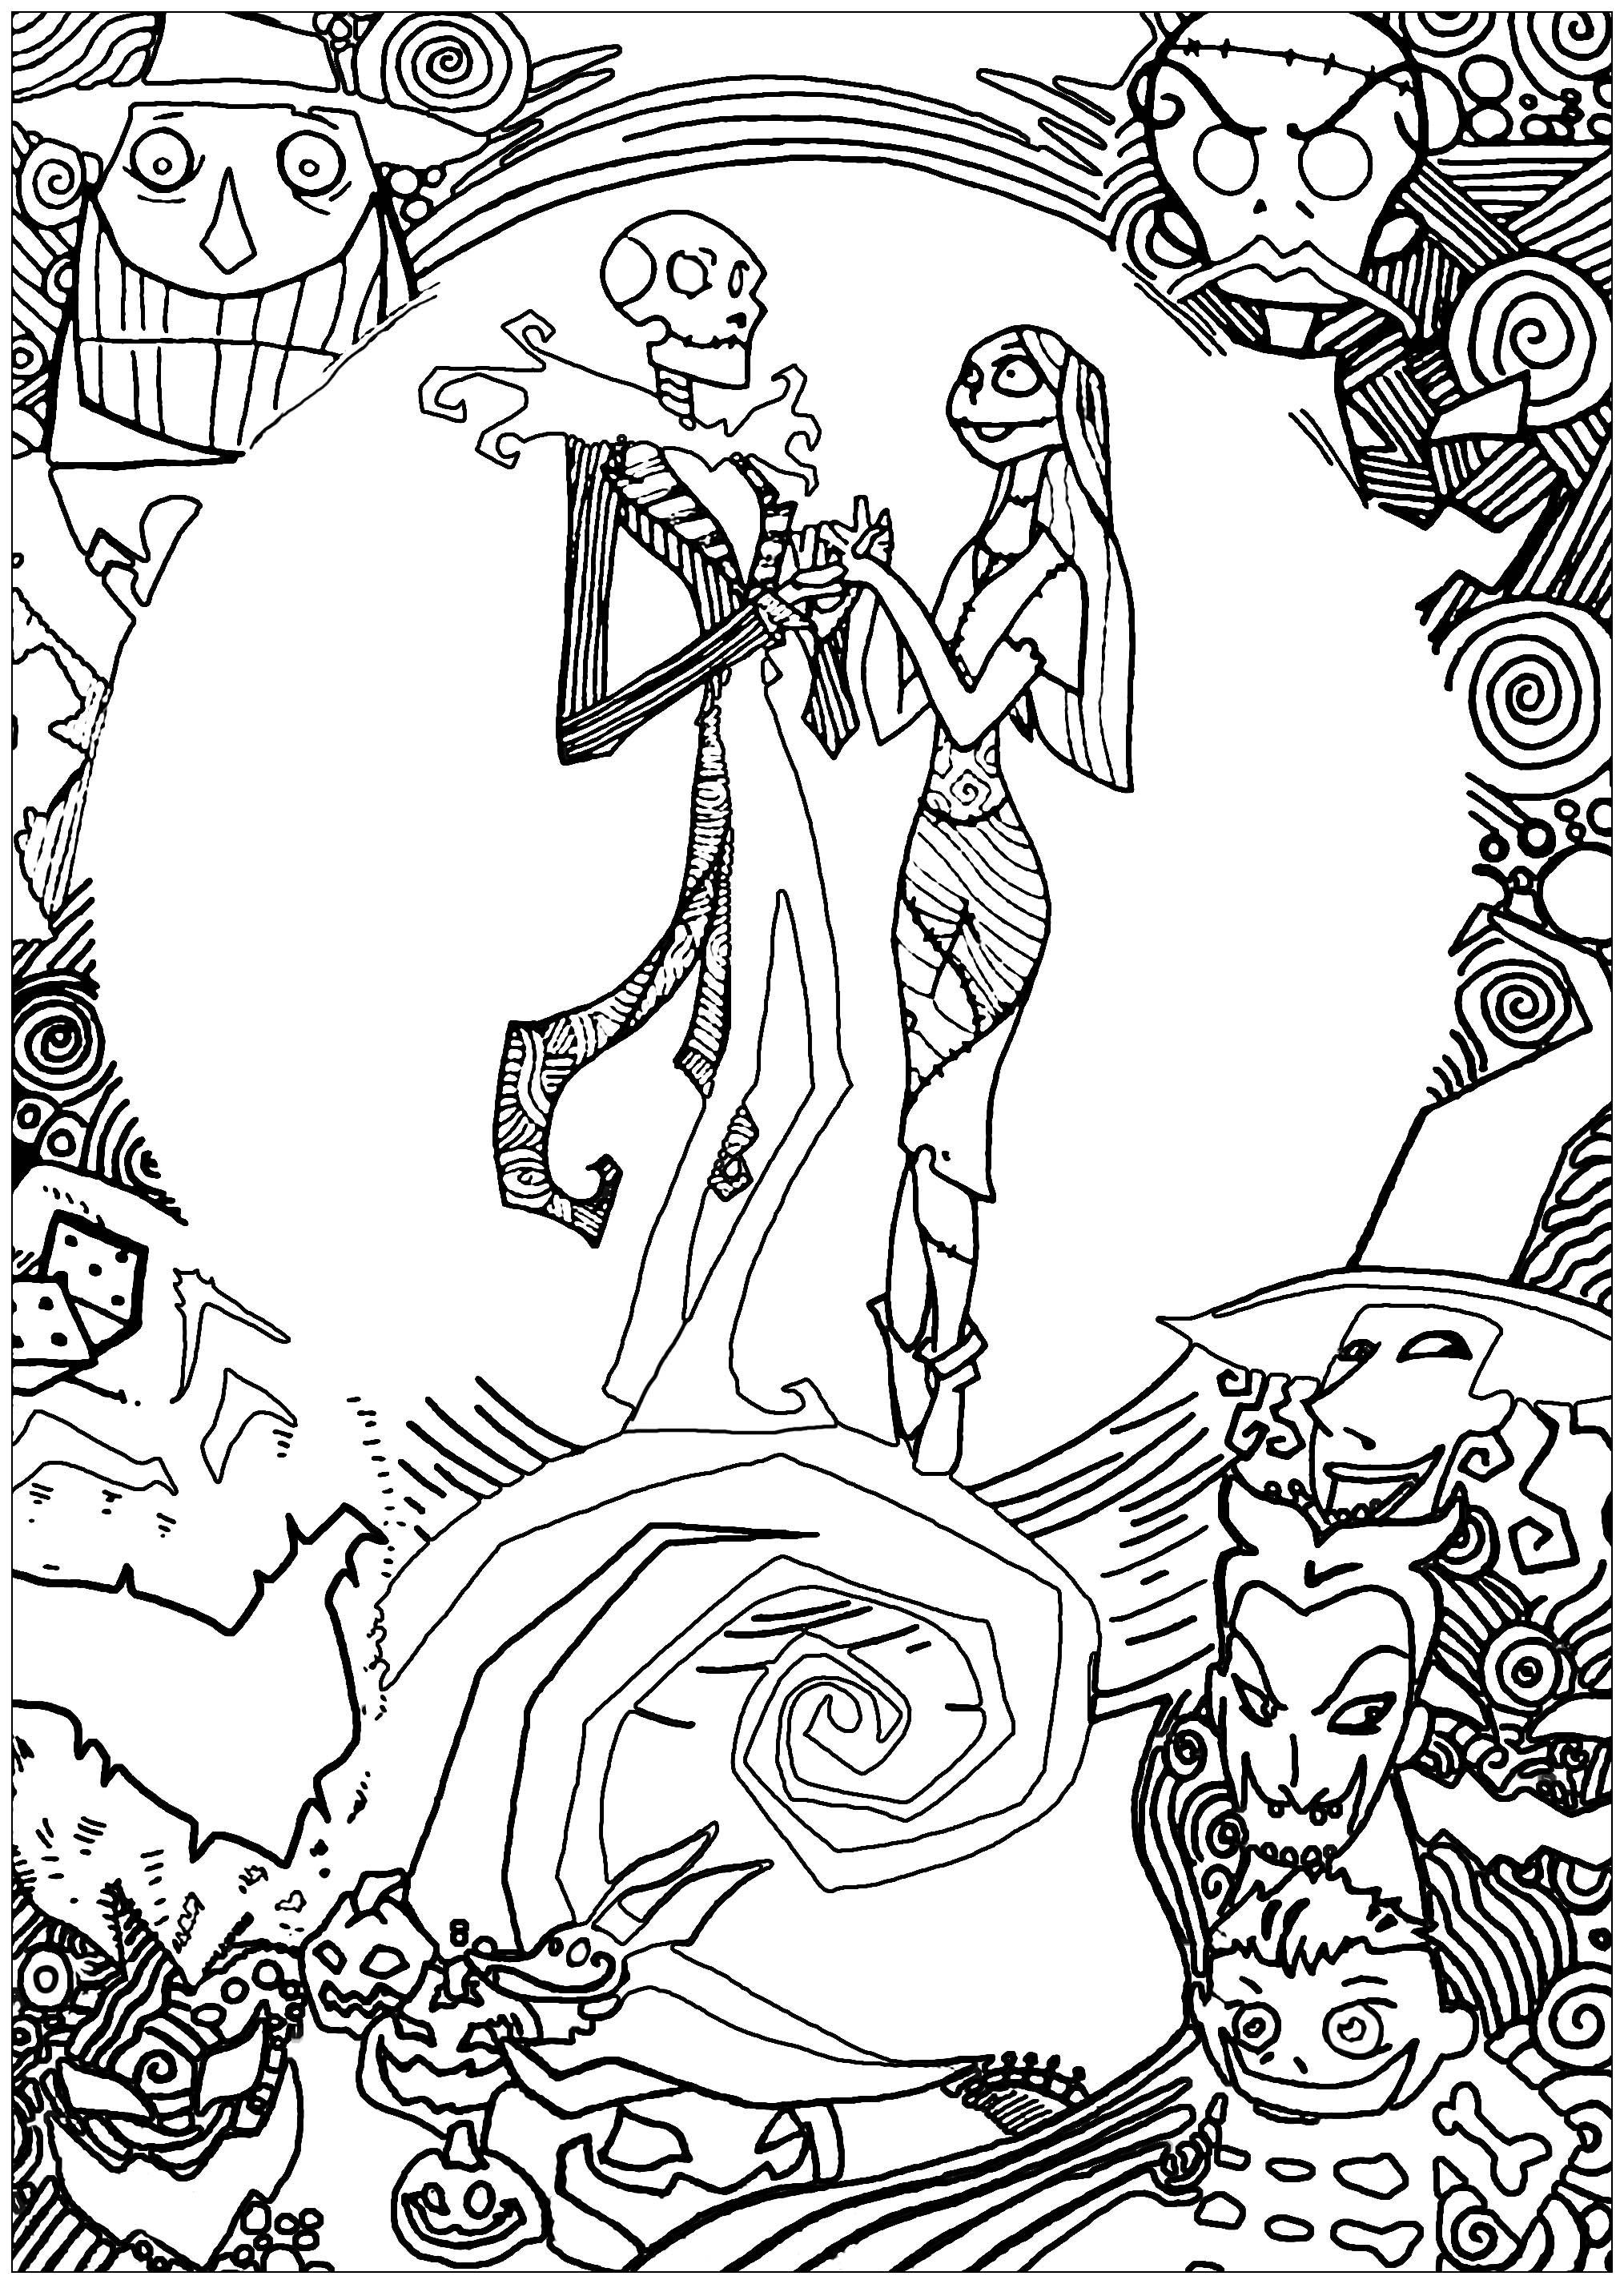 nightmare before christmas coloring free printable nightmare before christmas coloring pages nightmare coloring before christmas 1 1